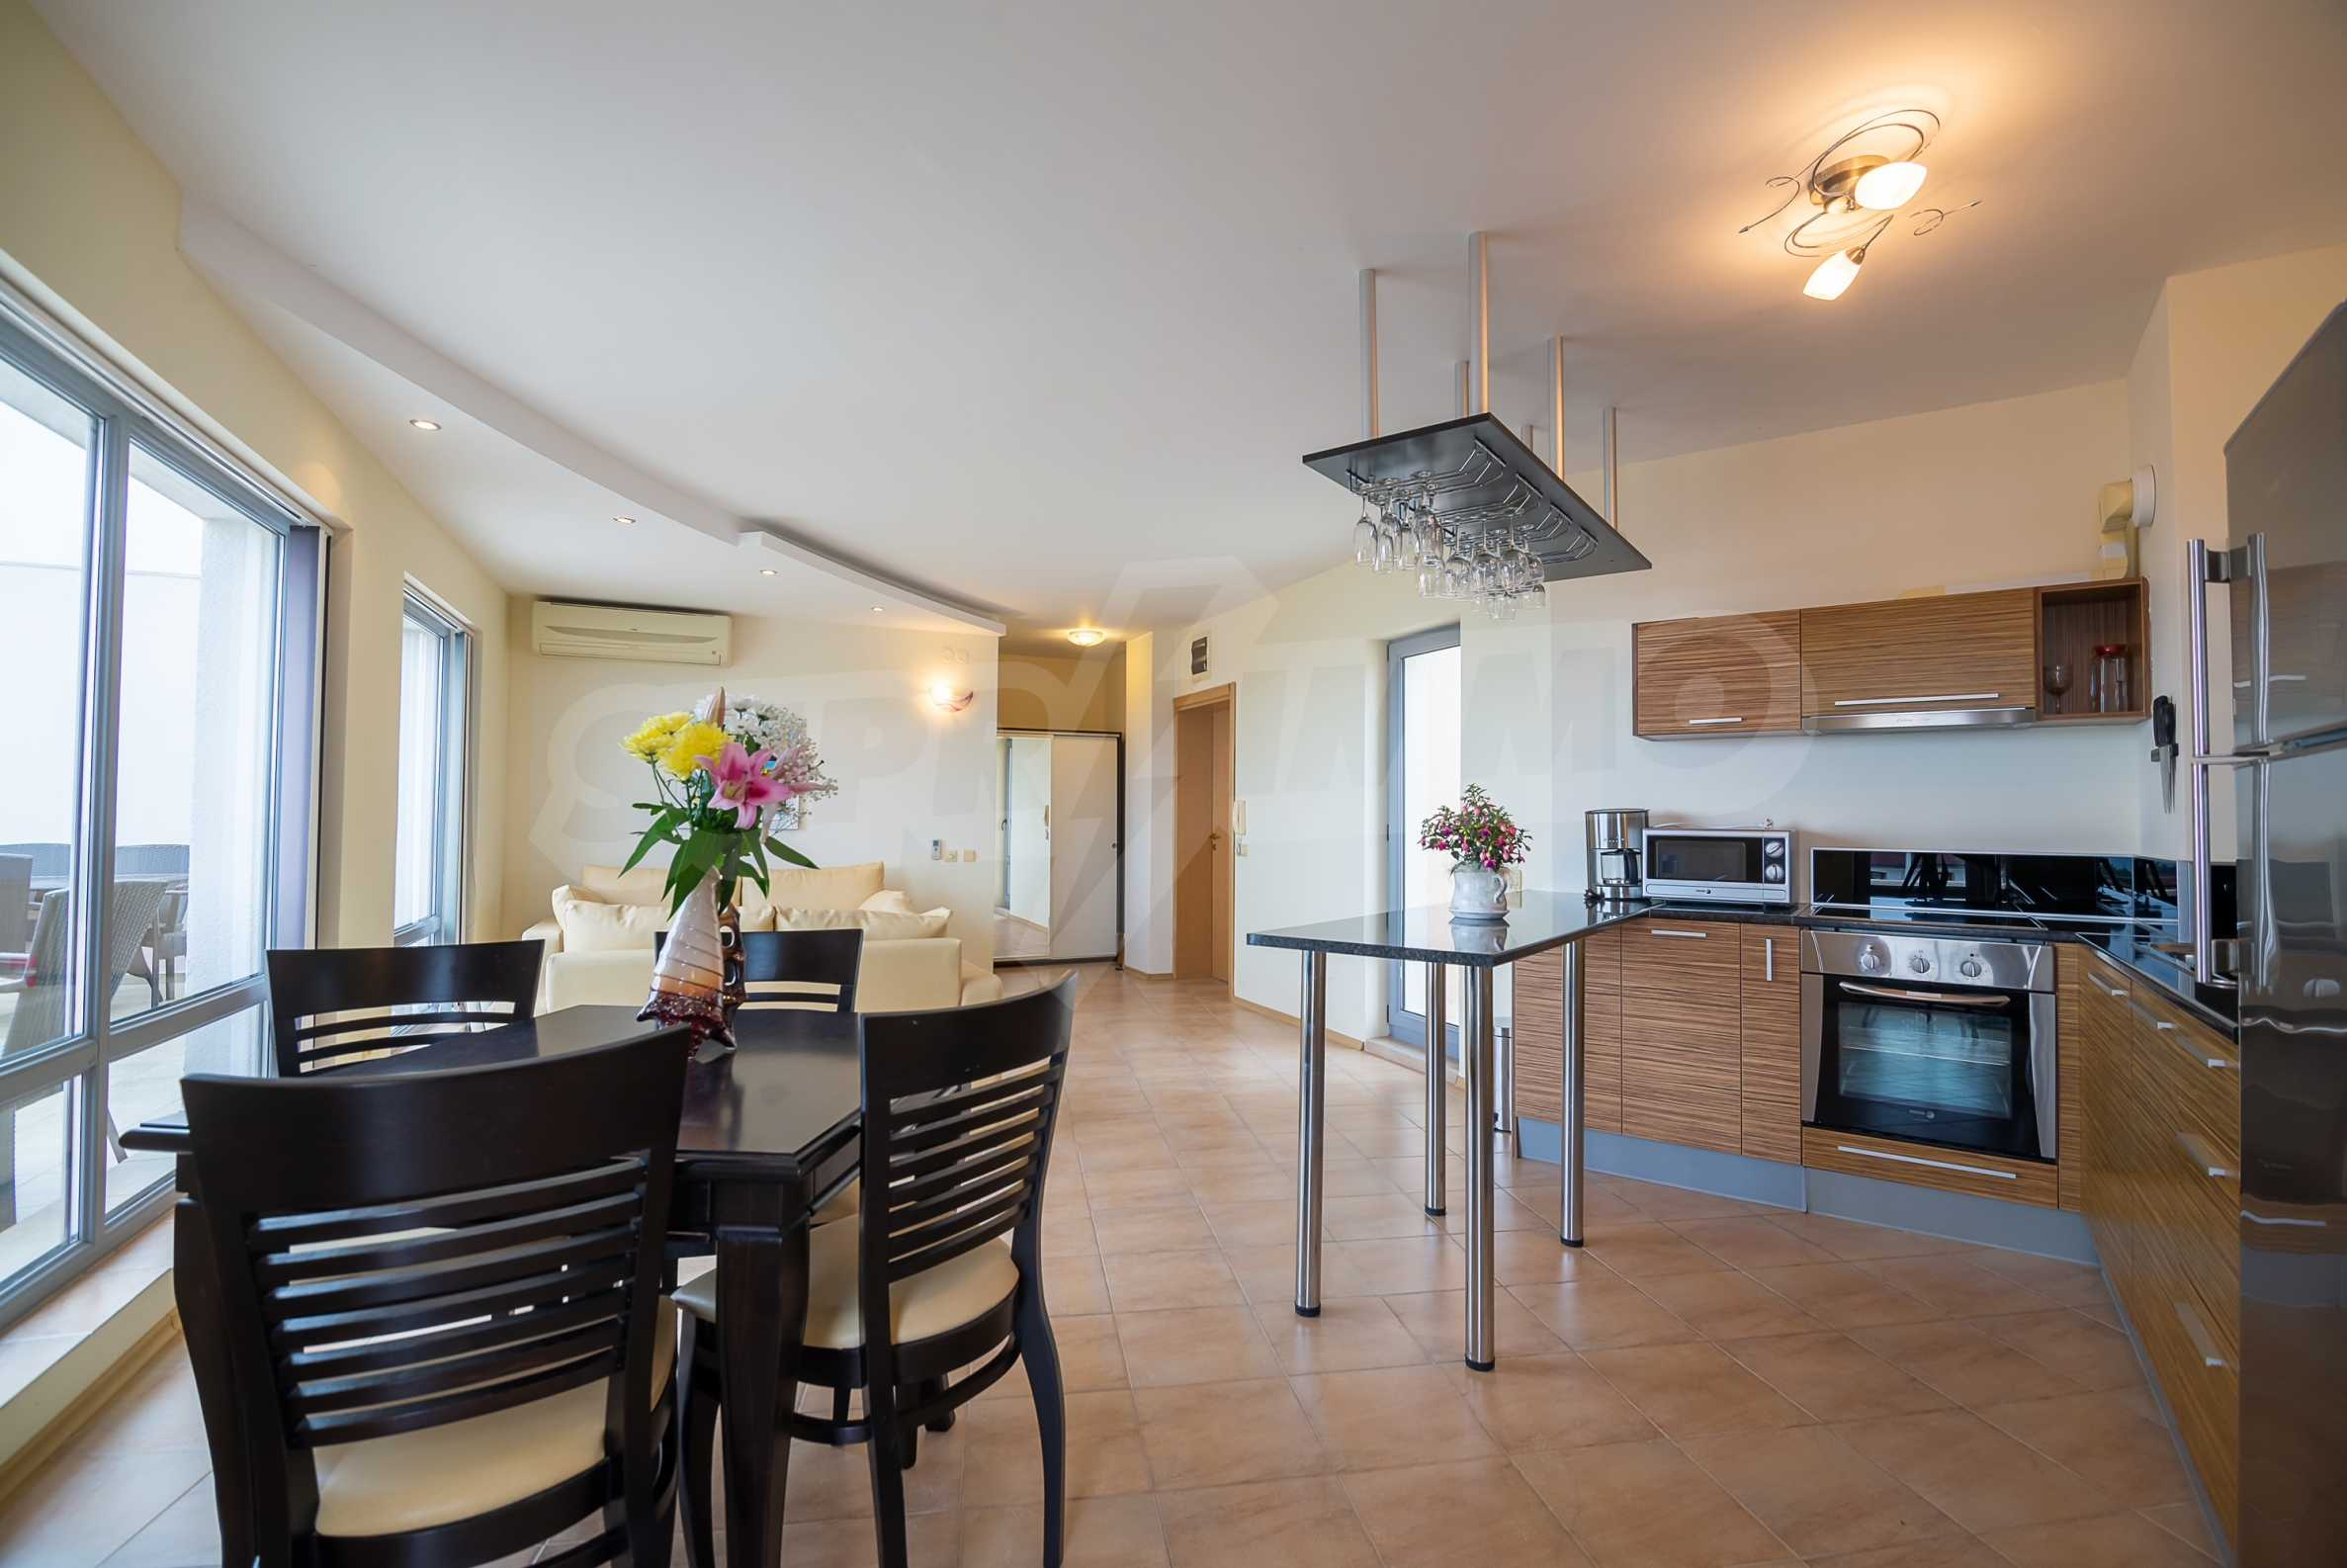 Penthouse Panorama - two-bedroom property overlooking the sea and the port 1